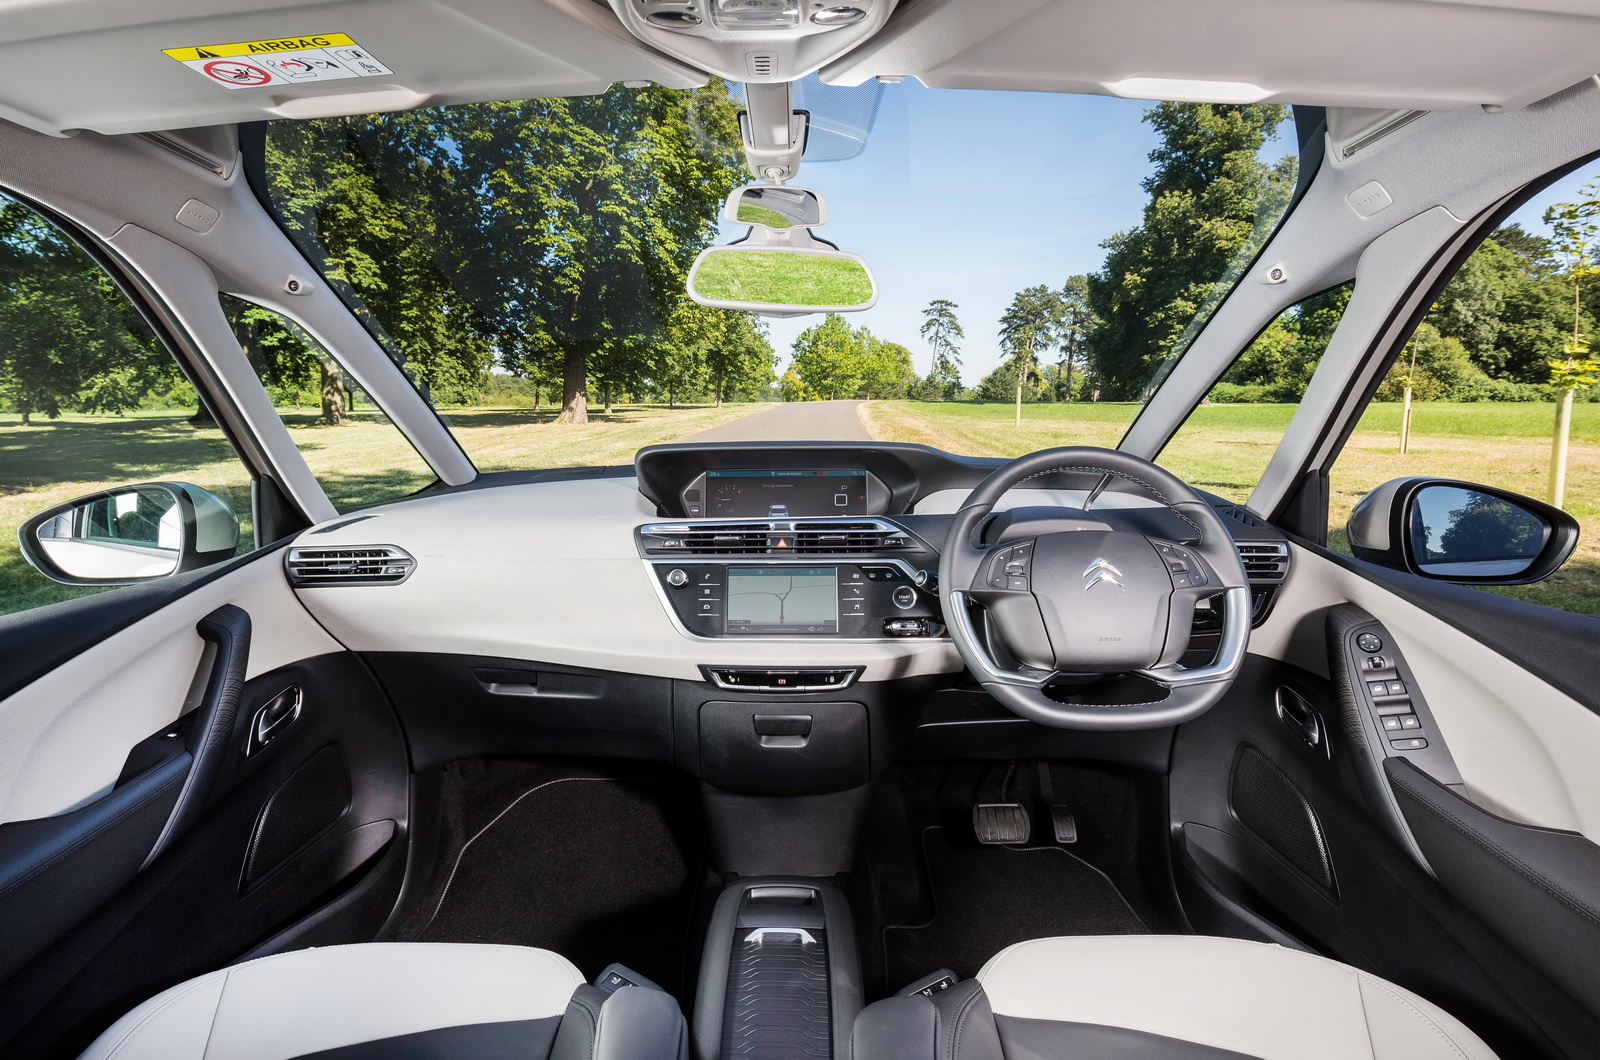 citroen s updated c4 picasso grand c4 picasso launched. Black Bedroom Furniture Sets. Home Design Ideas